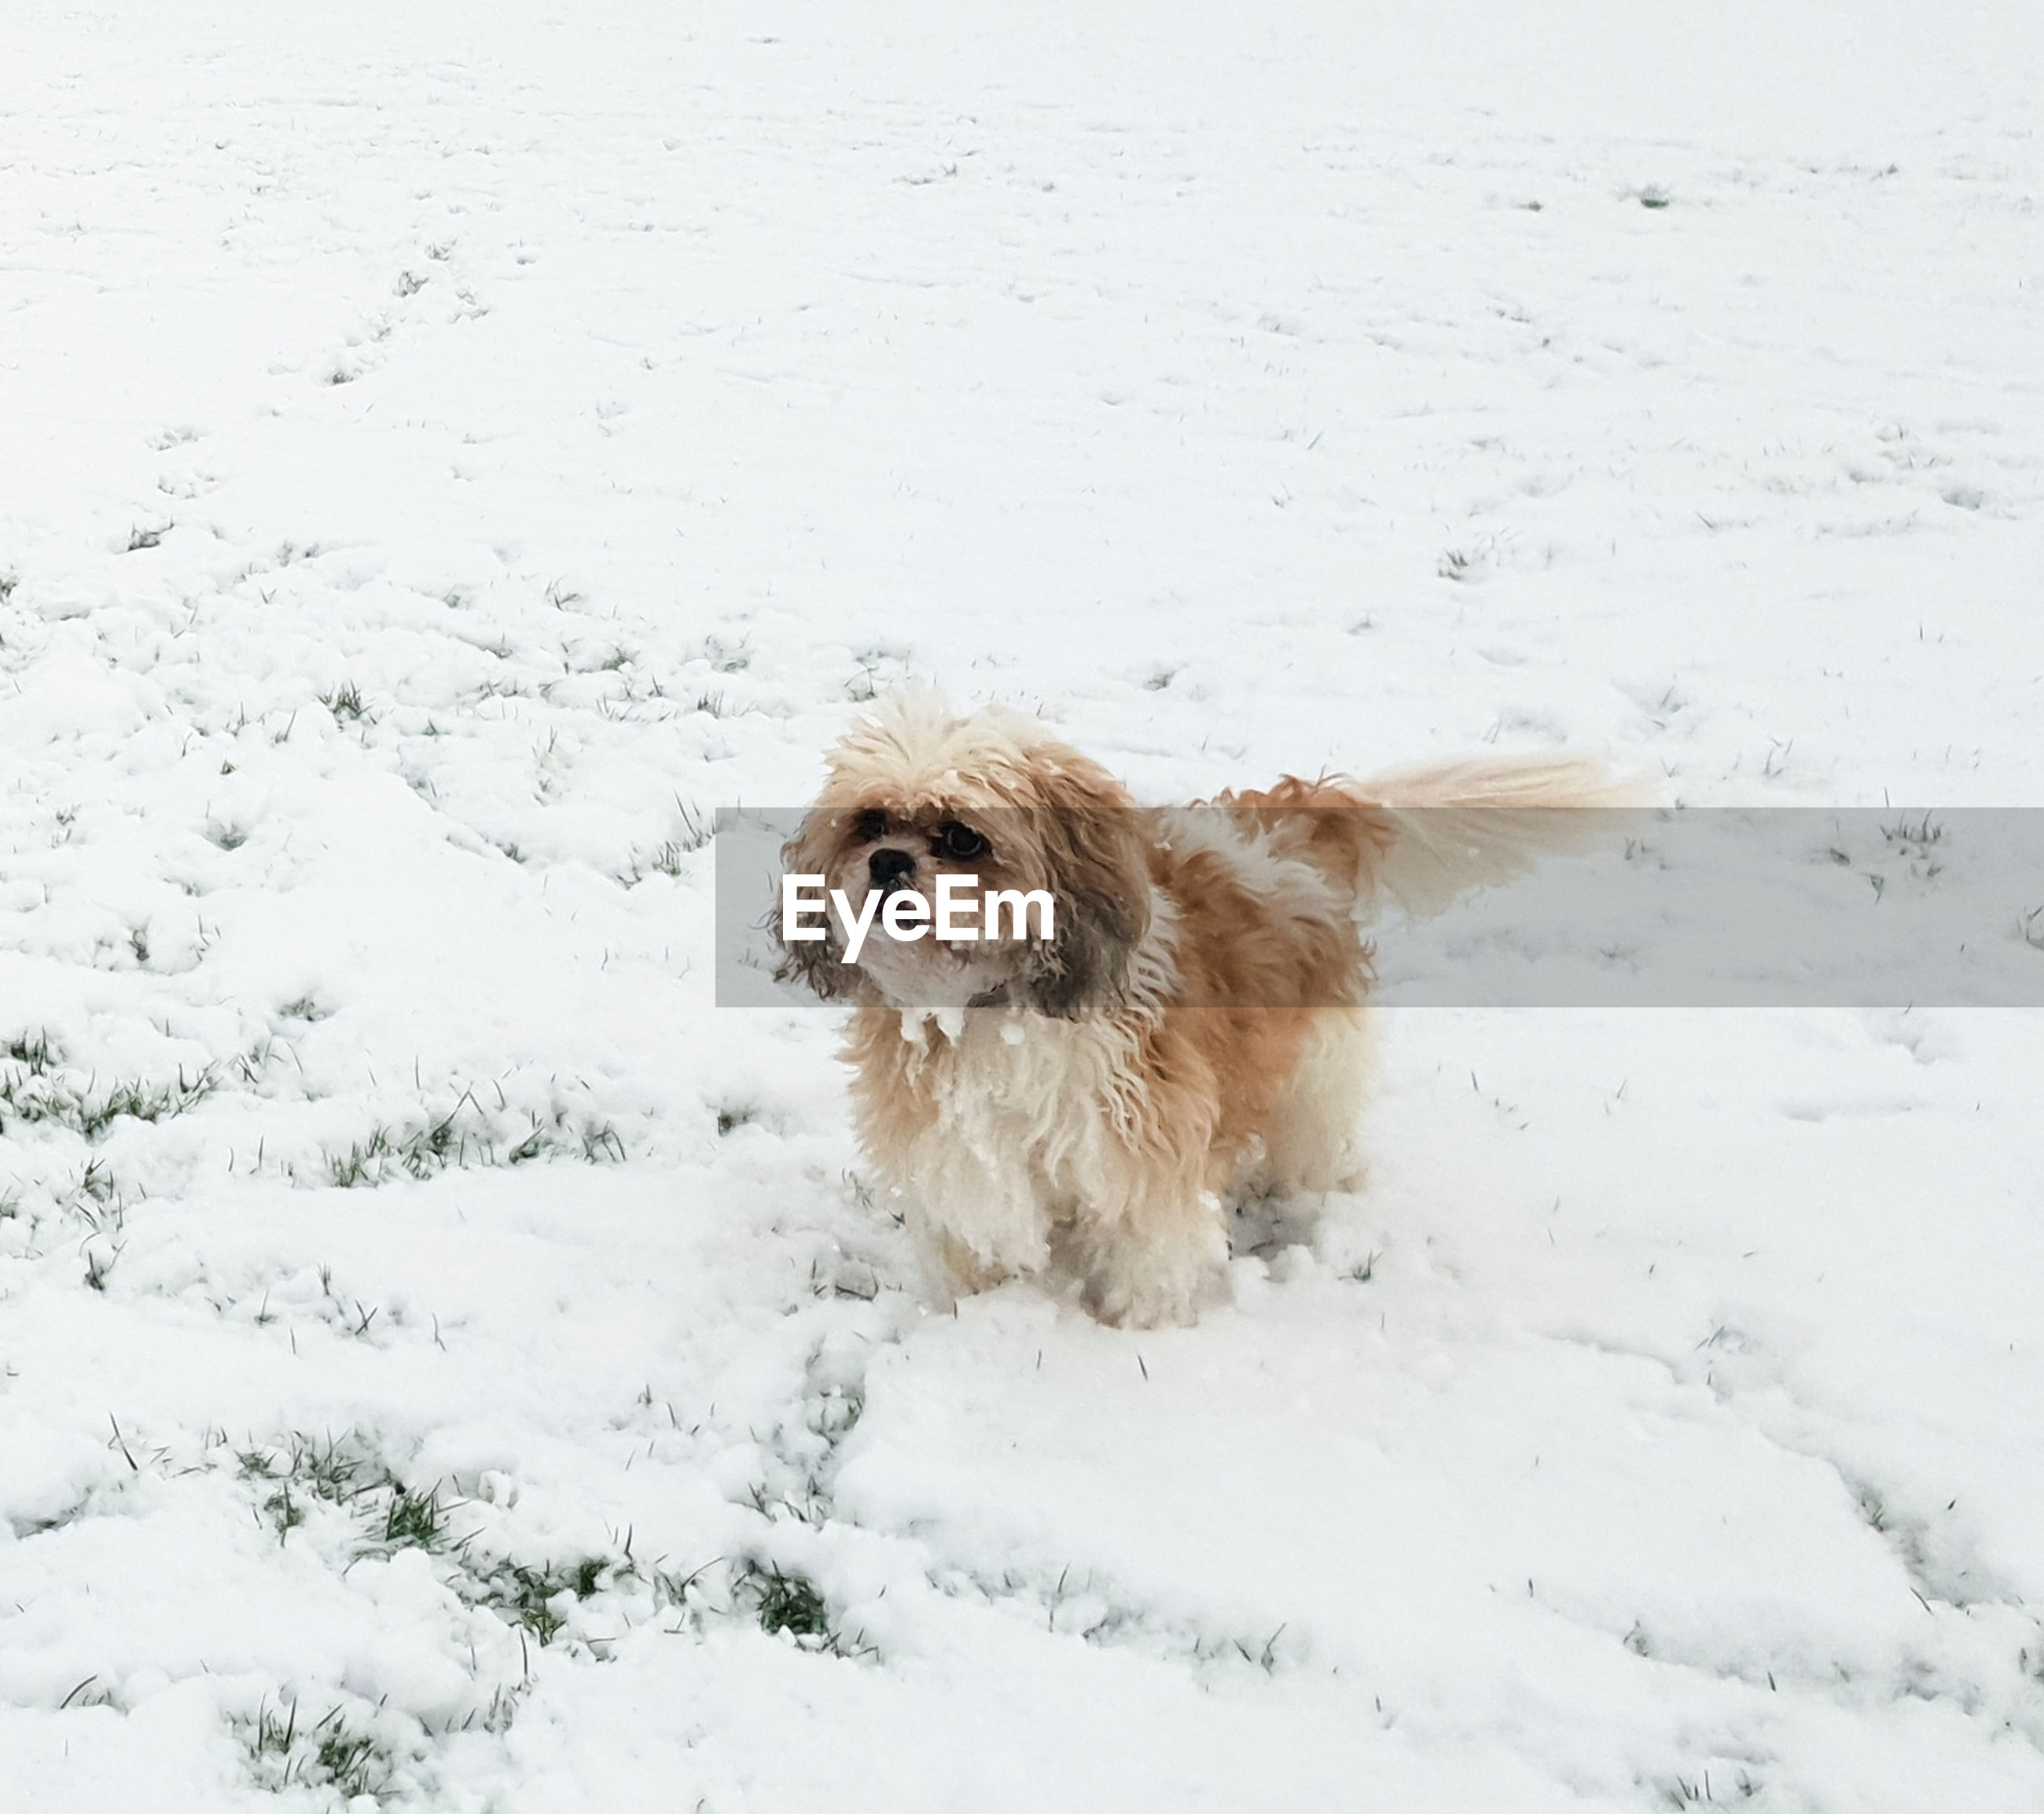 canine, dog, one animal, snow, animal themes, cold temperature, mammal, animal, pets, winter, domestic, domestic animals, vertebrate, white color, field, covering, land, nature, no people, small, snowing